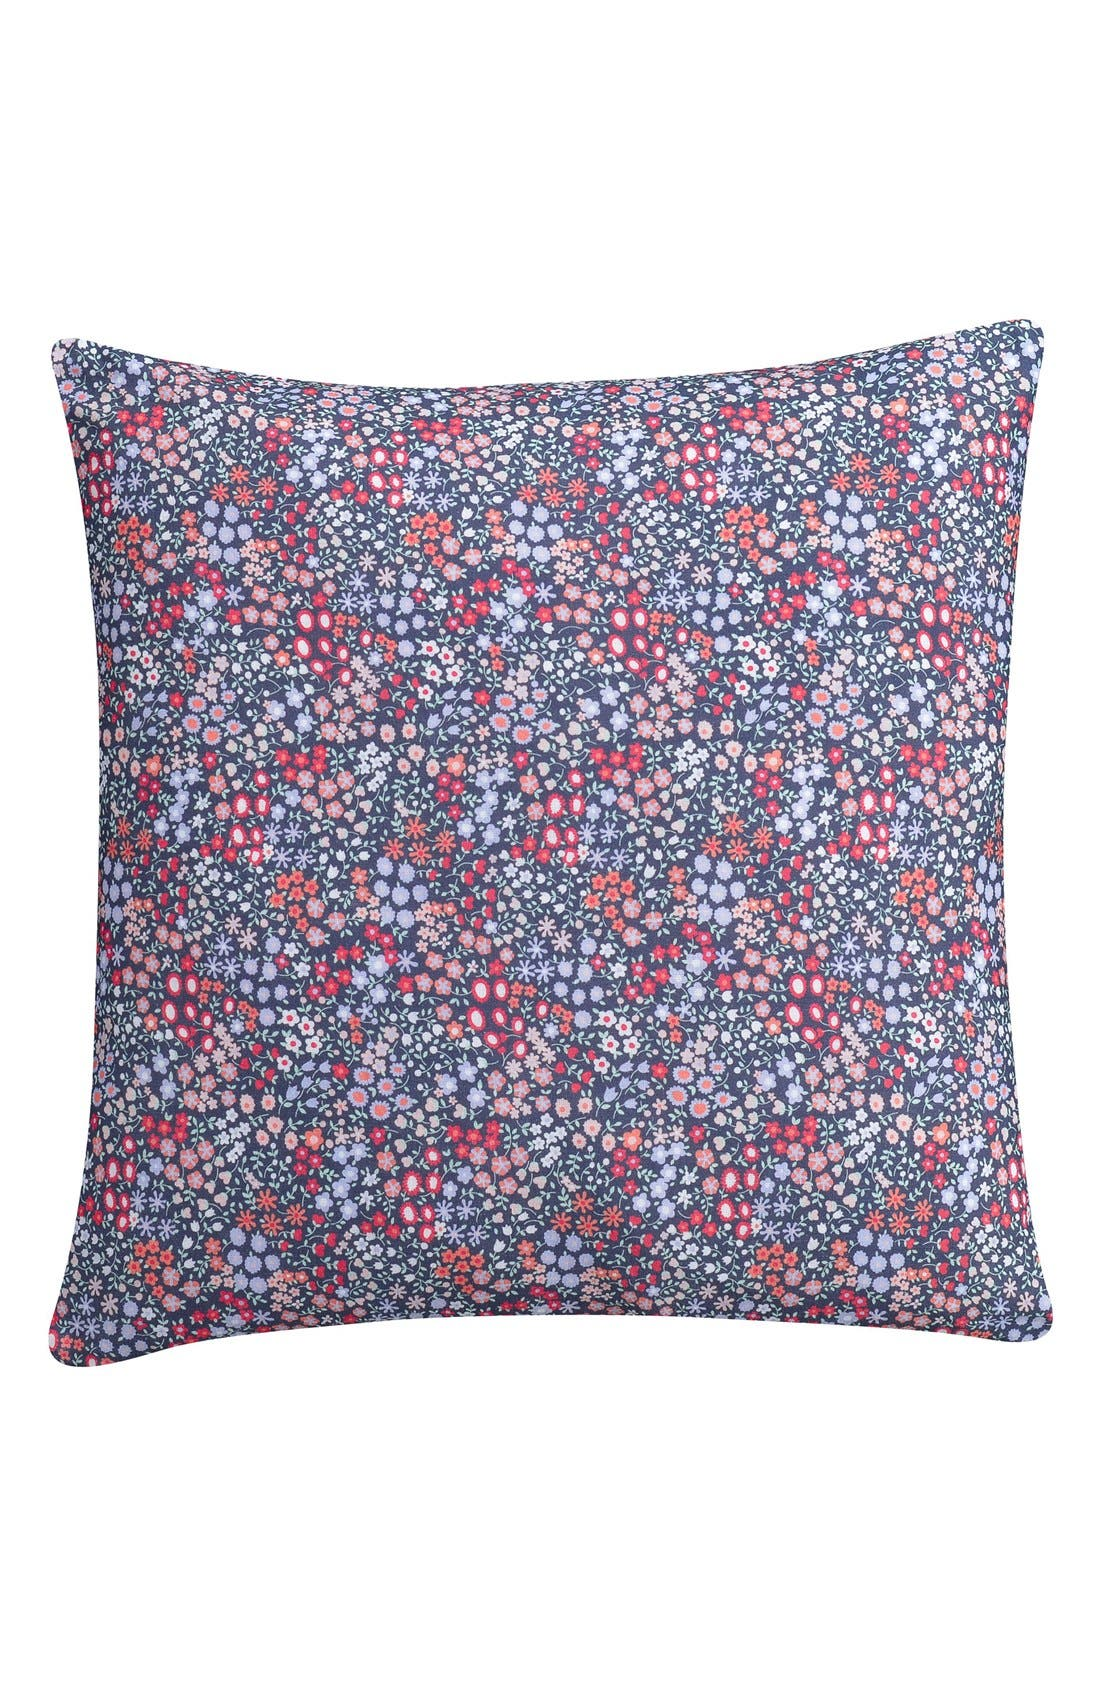 'Sketch' Floral Print Accent Pillow,                         Main,                         color, Red/ Multi